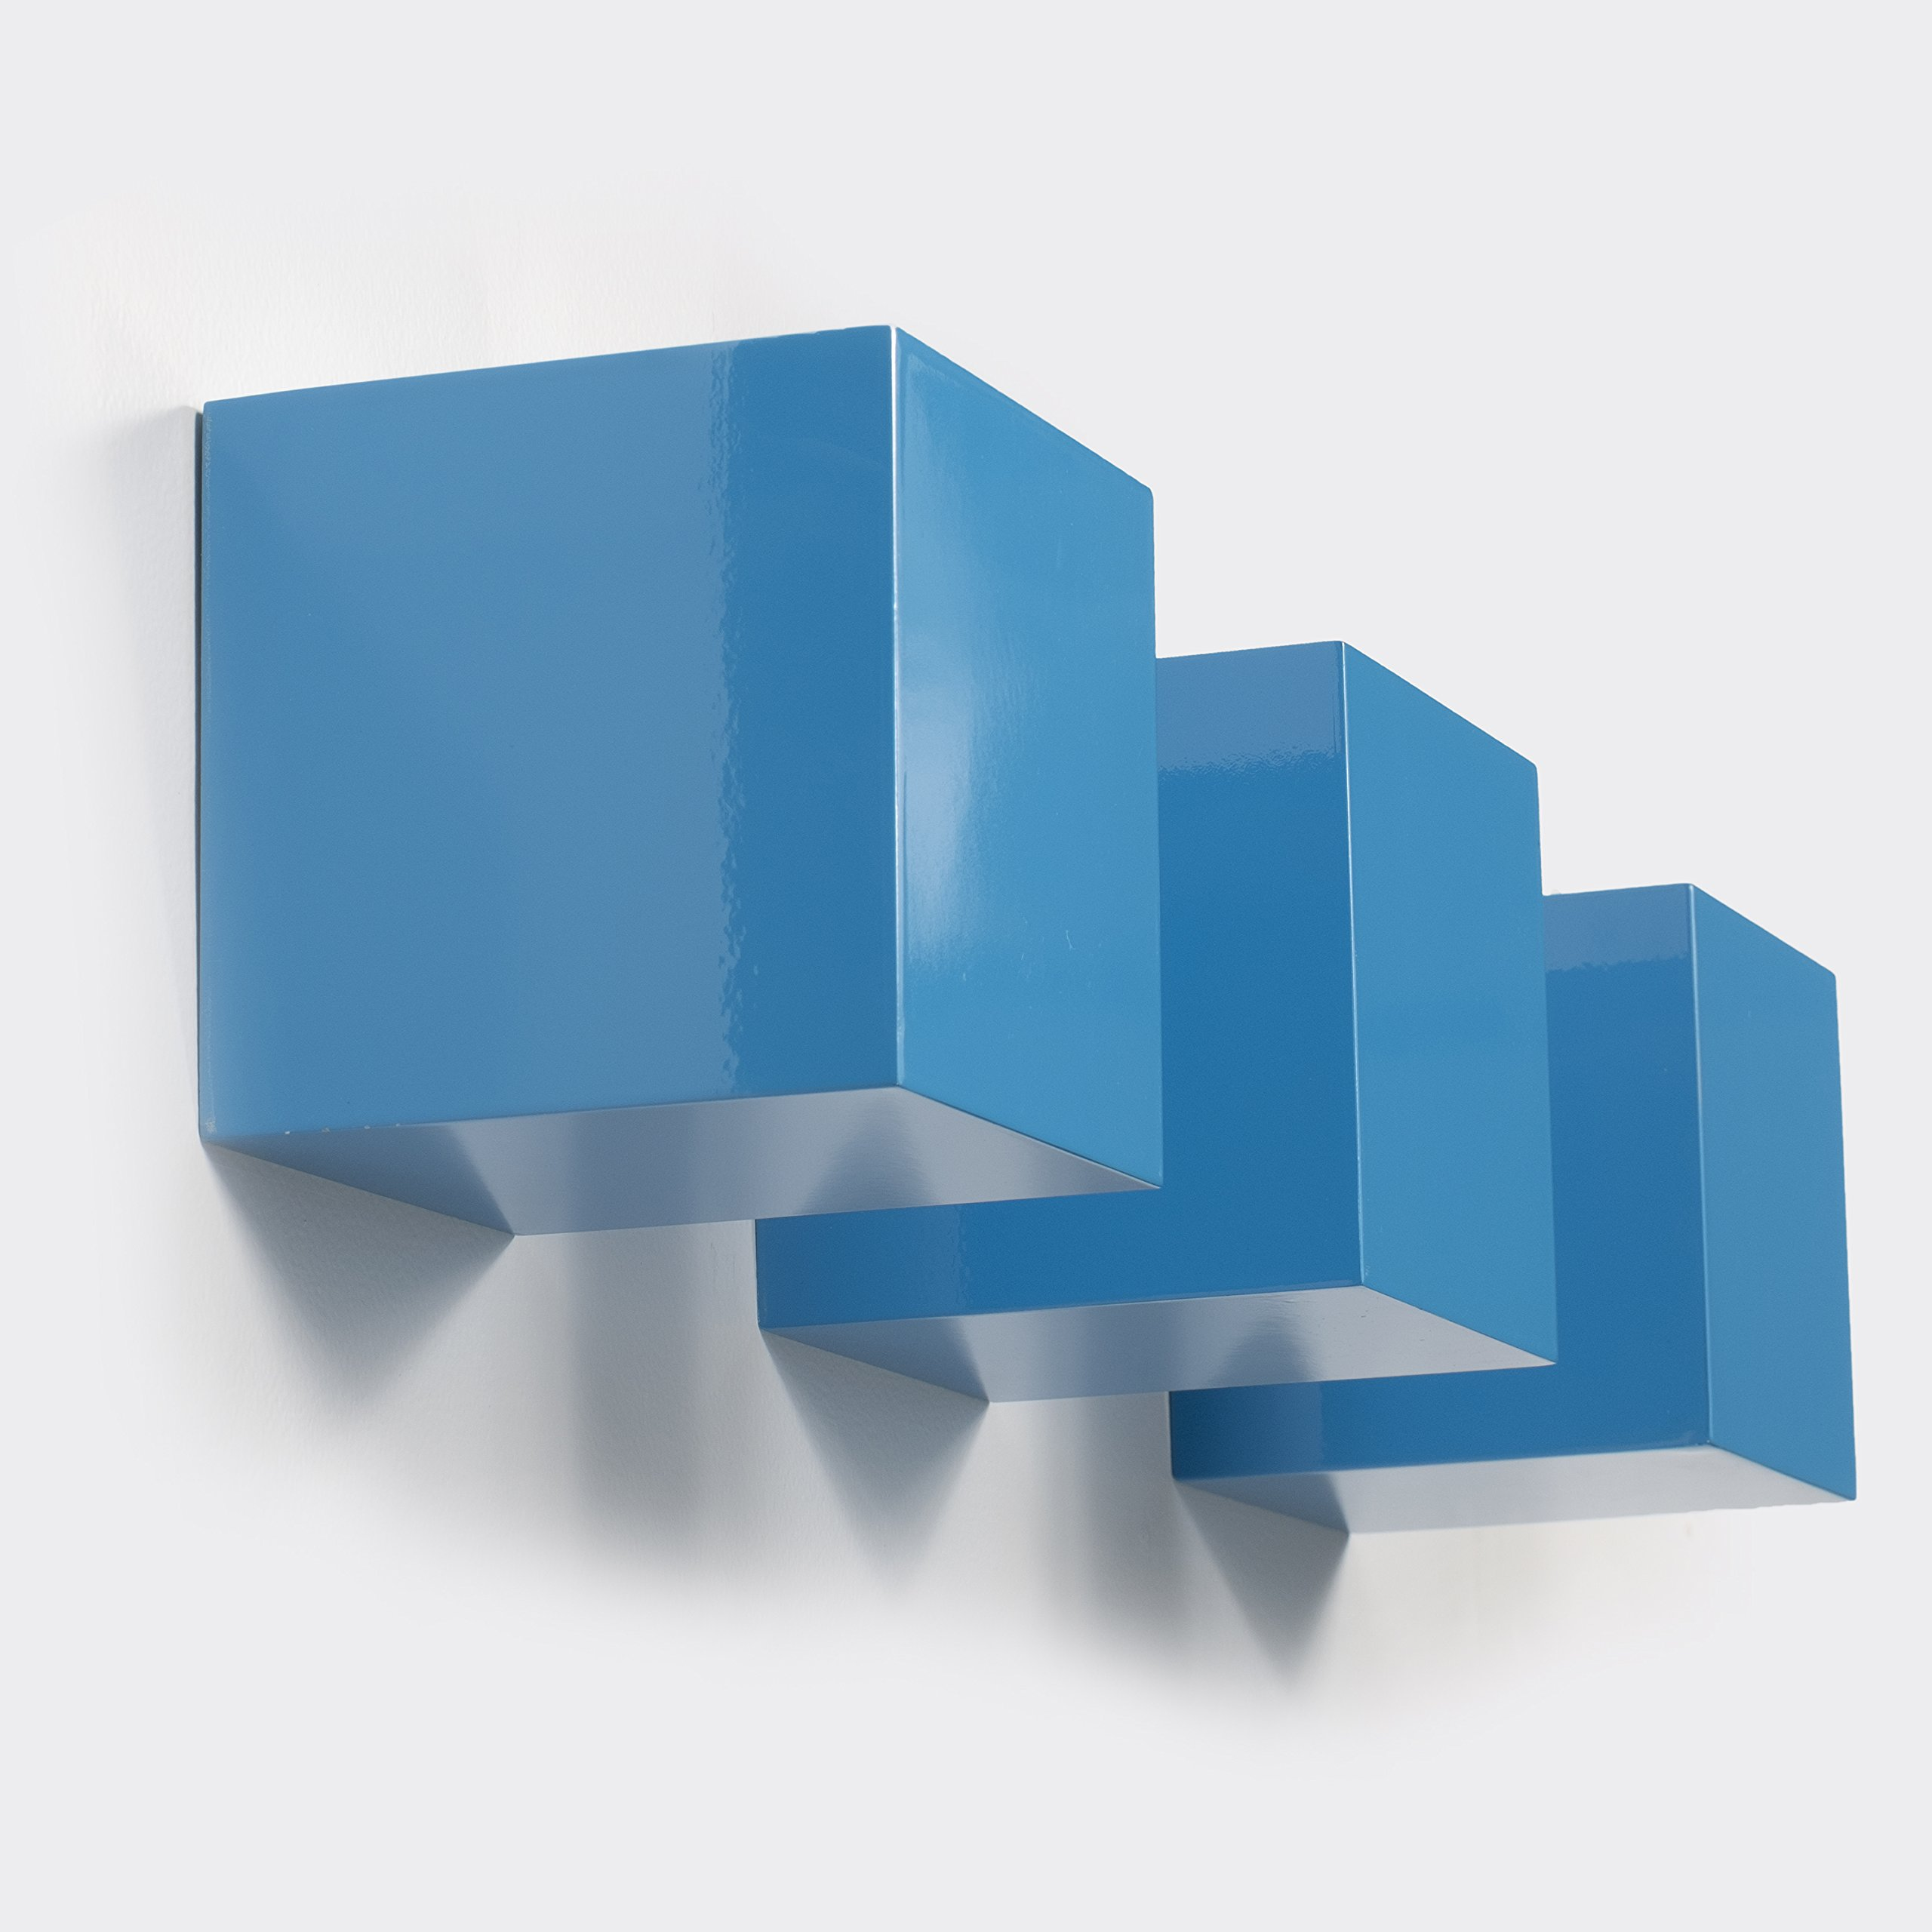 Brightmaison Kid's Nursery Room Decorative Square Wall Cubes Floating Block Shelves Set of 3 (Blue)